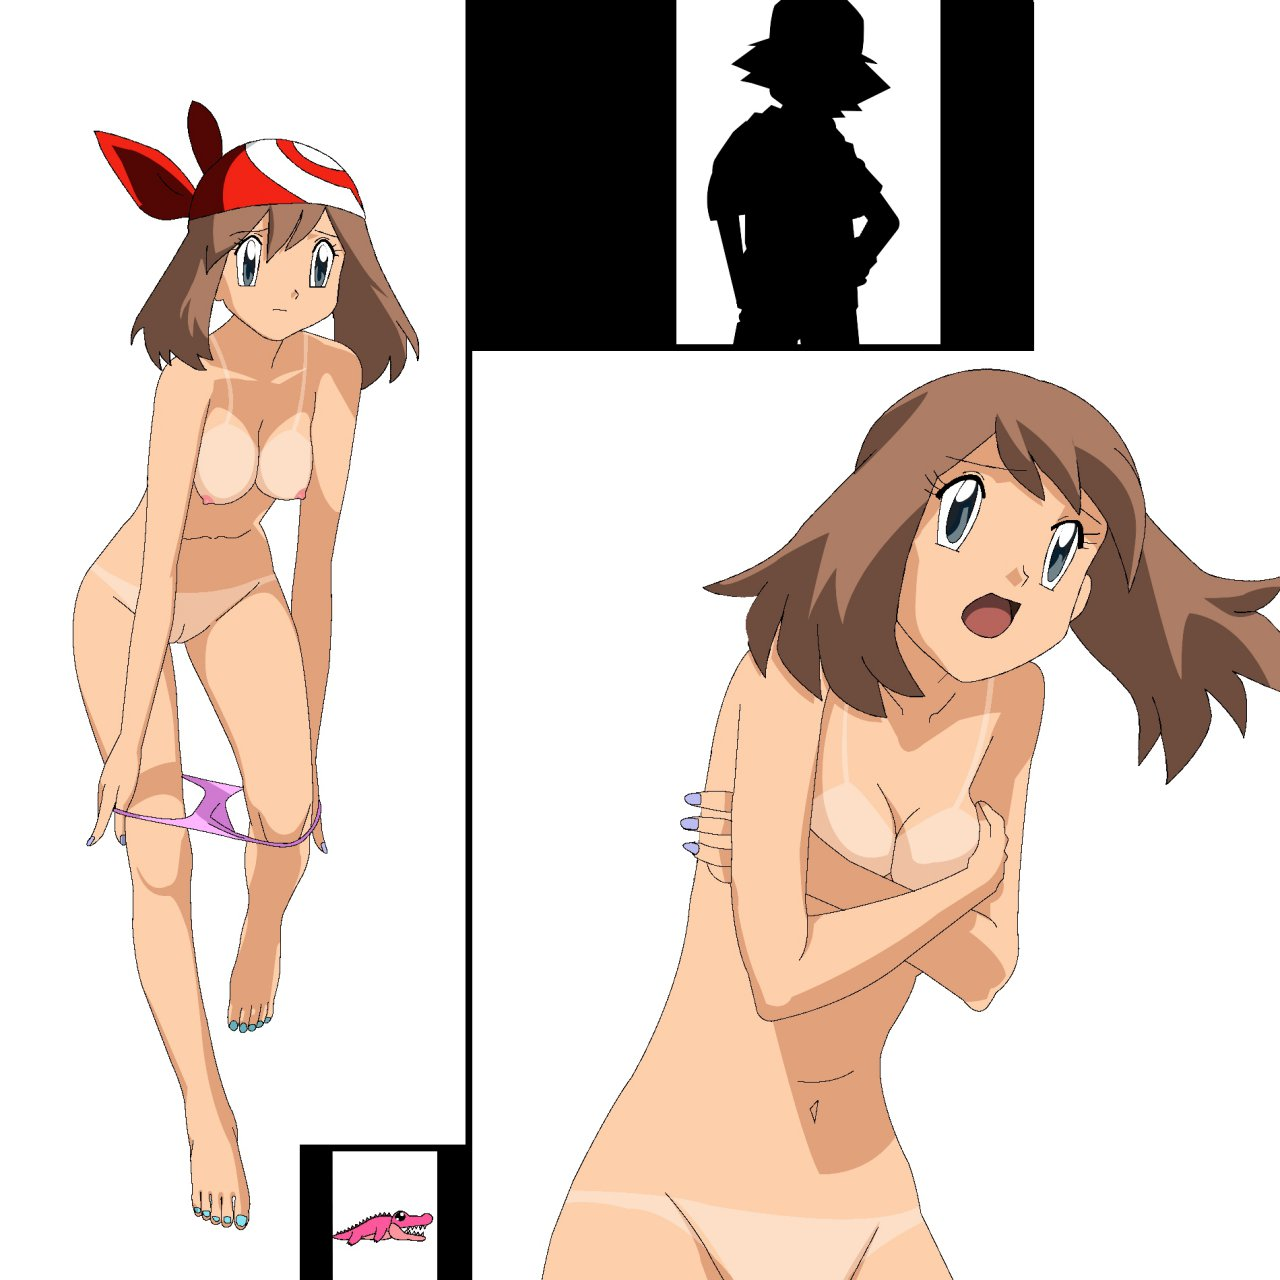 Misty Pokemon Porn Nude May Trainer Naked Iris